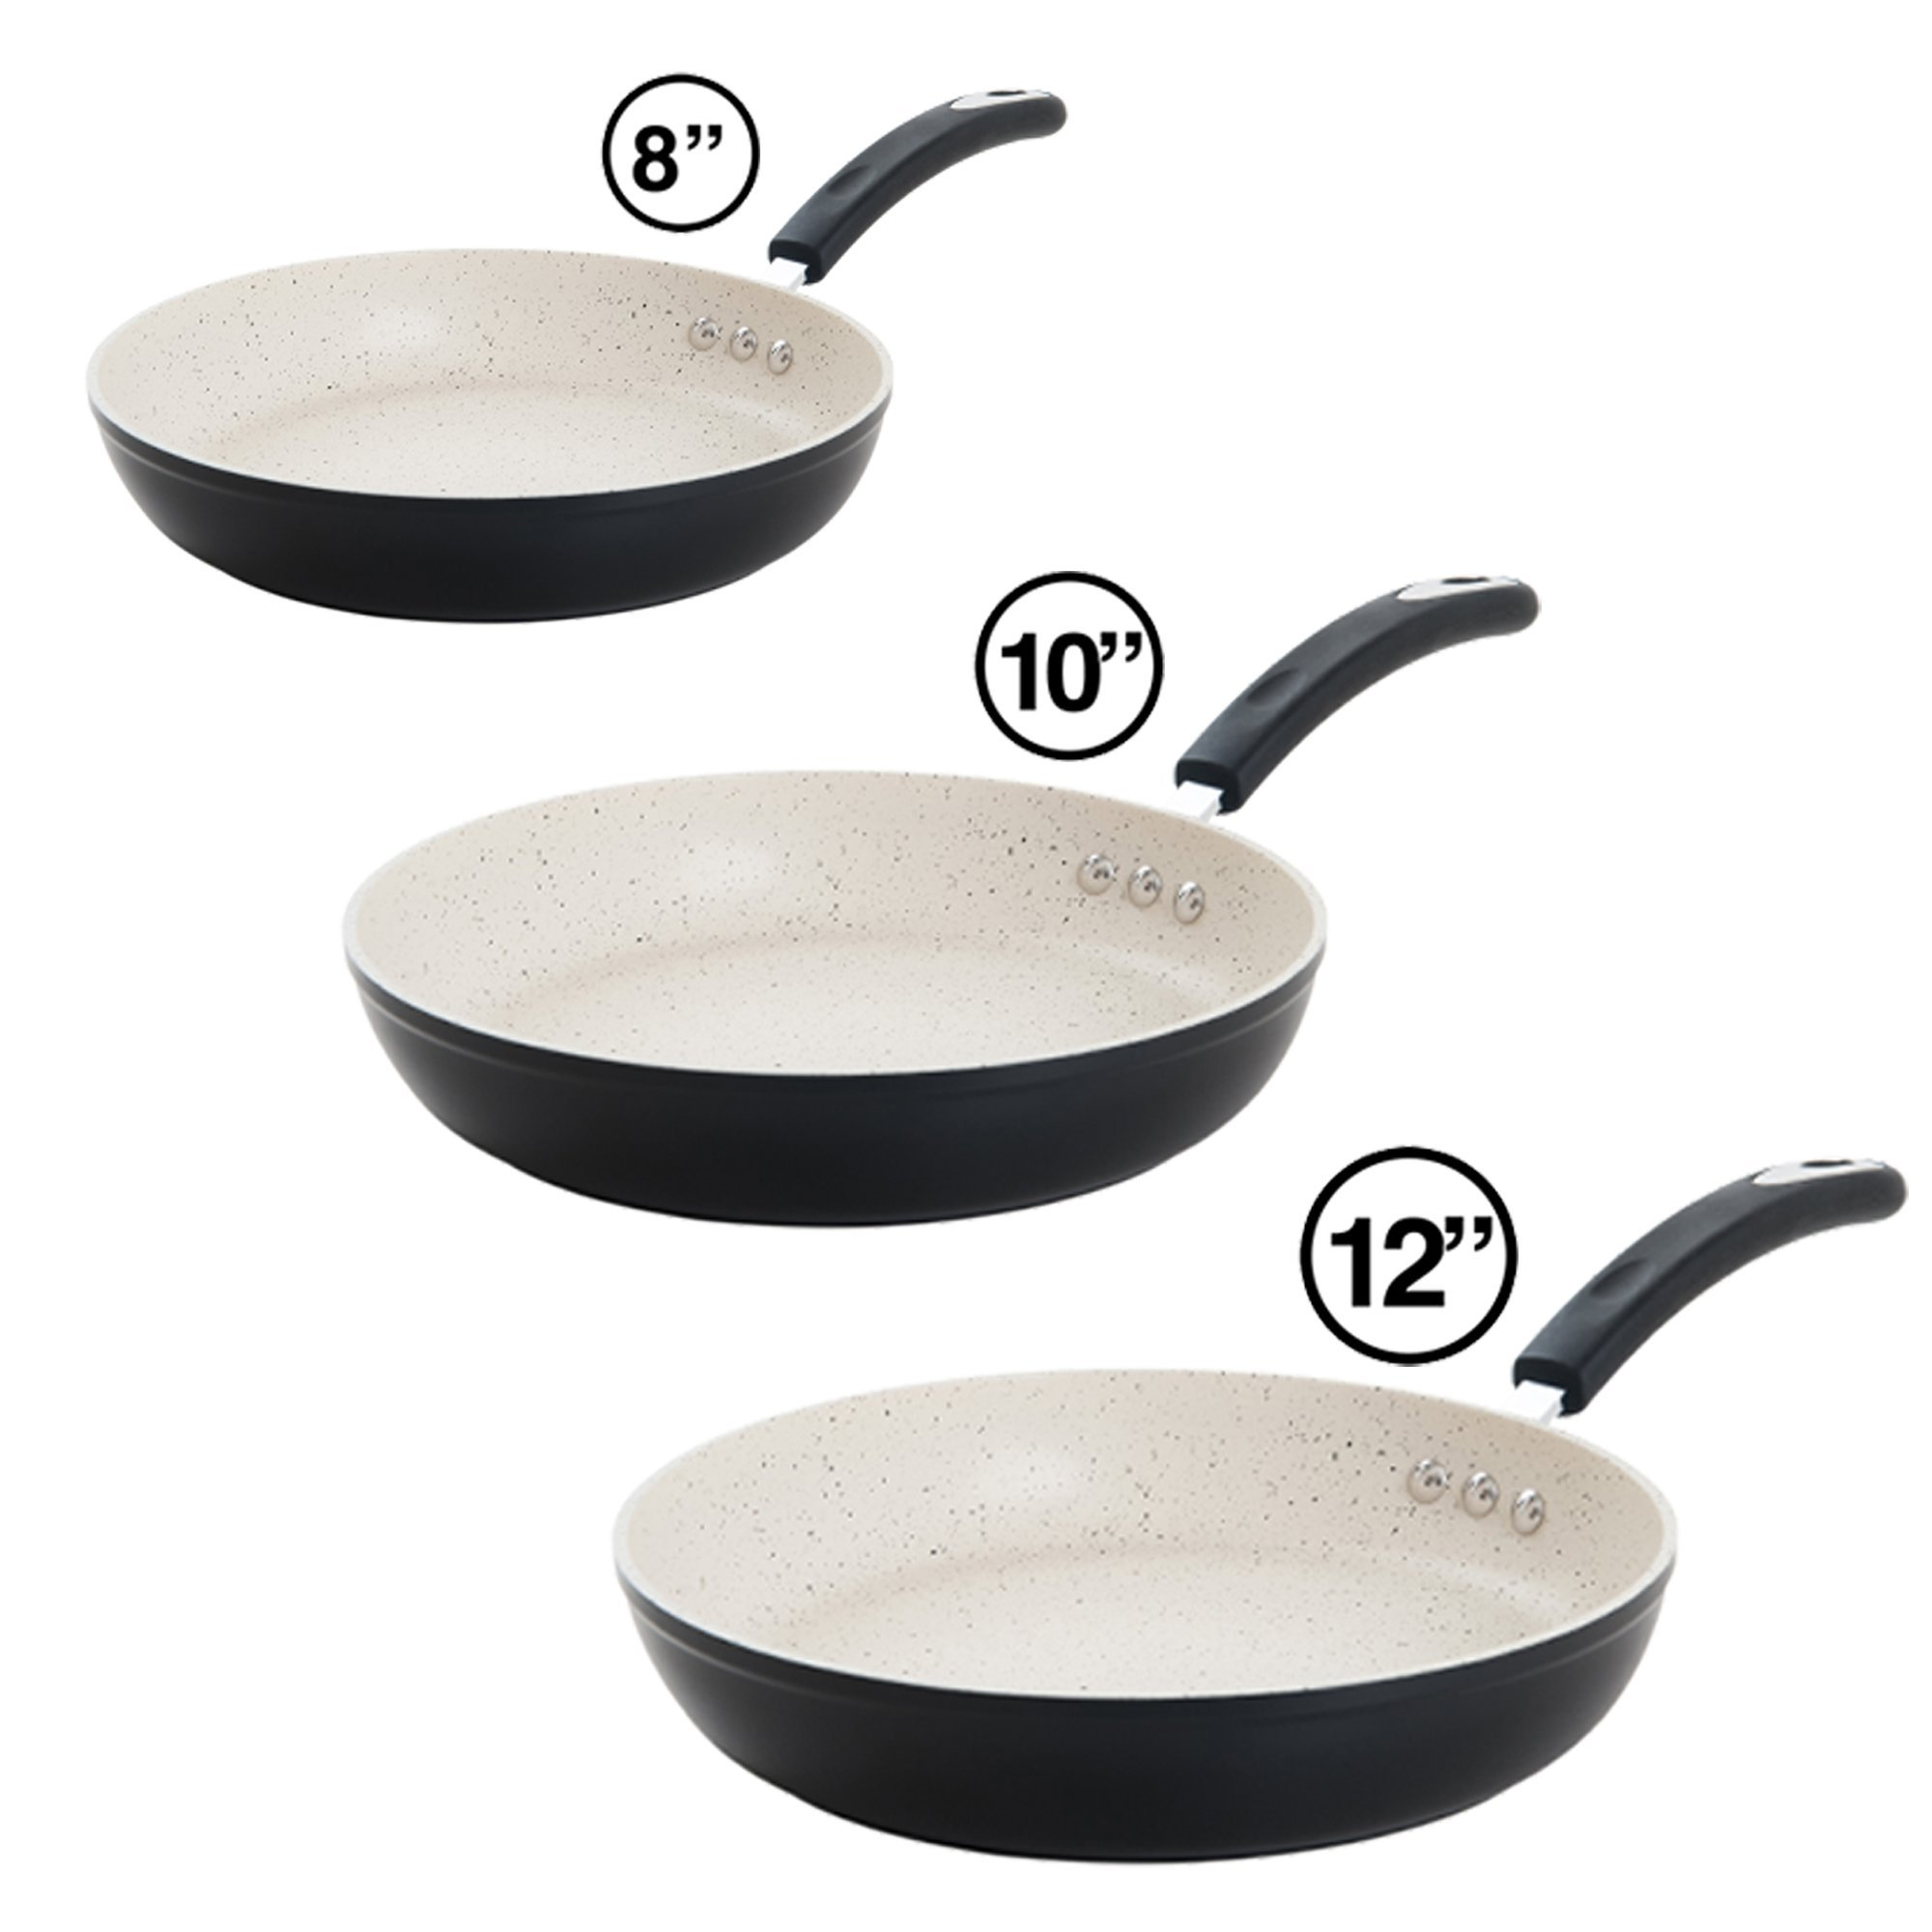 The Ozeri Stone Earth Frying Pan 3 Piece Bundle, with 100% APEO & PFOA-Free Stone-Derived Non-Stick Coating from Germany by  (Image #1)